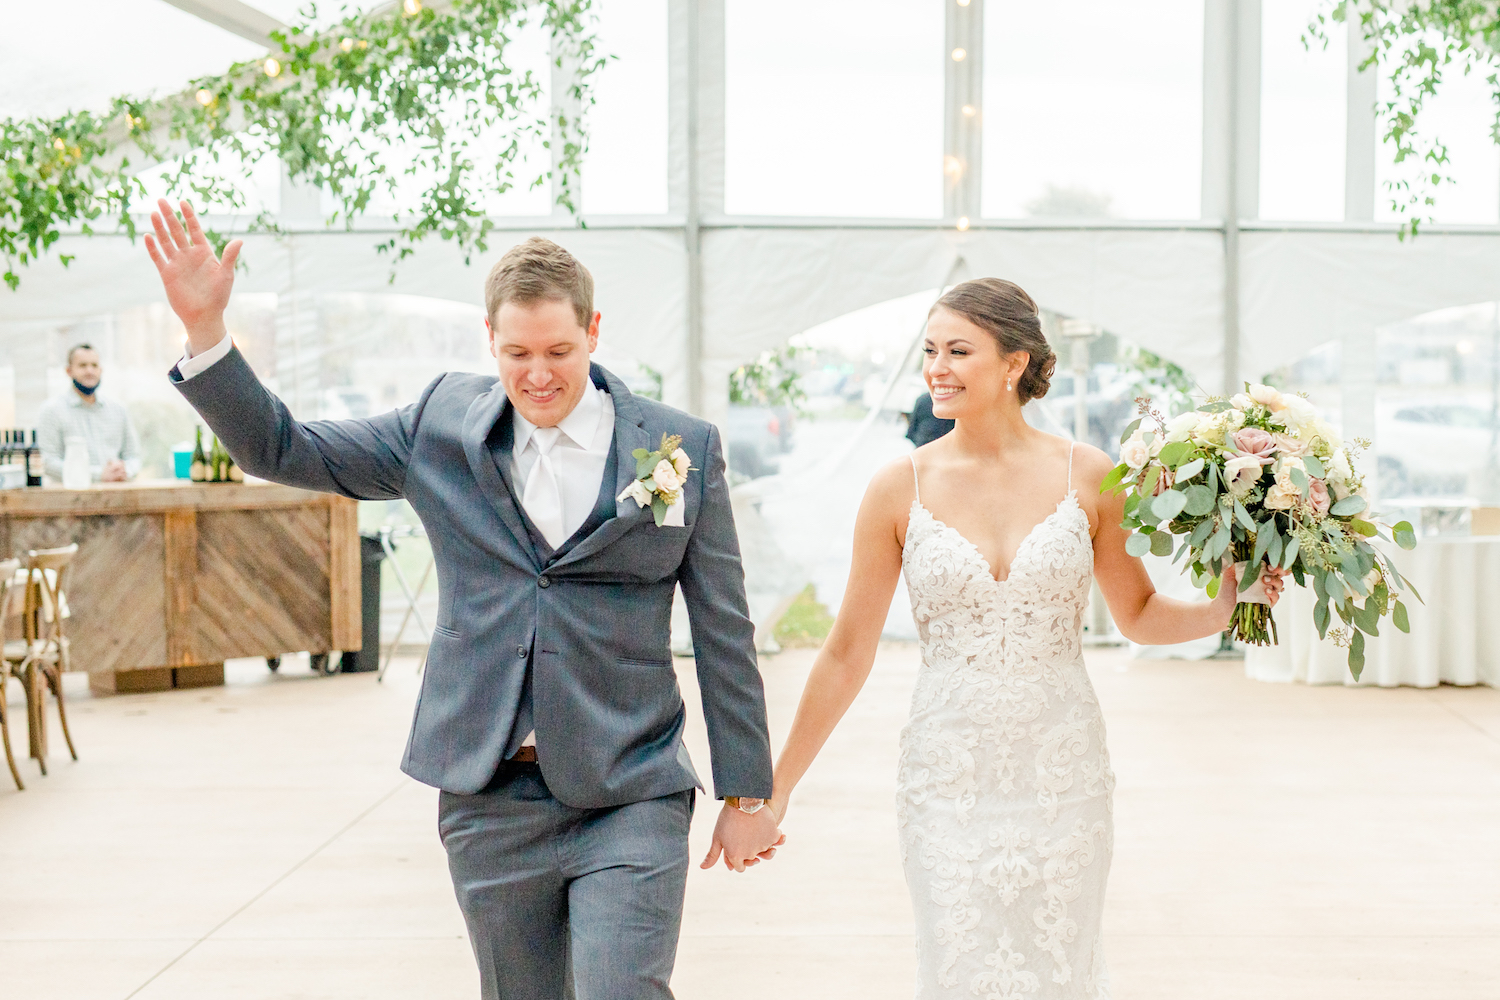 Bride and groom introduced at the lakehouse wedding